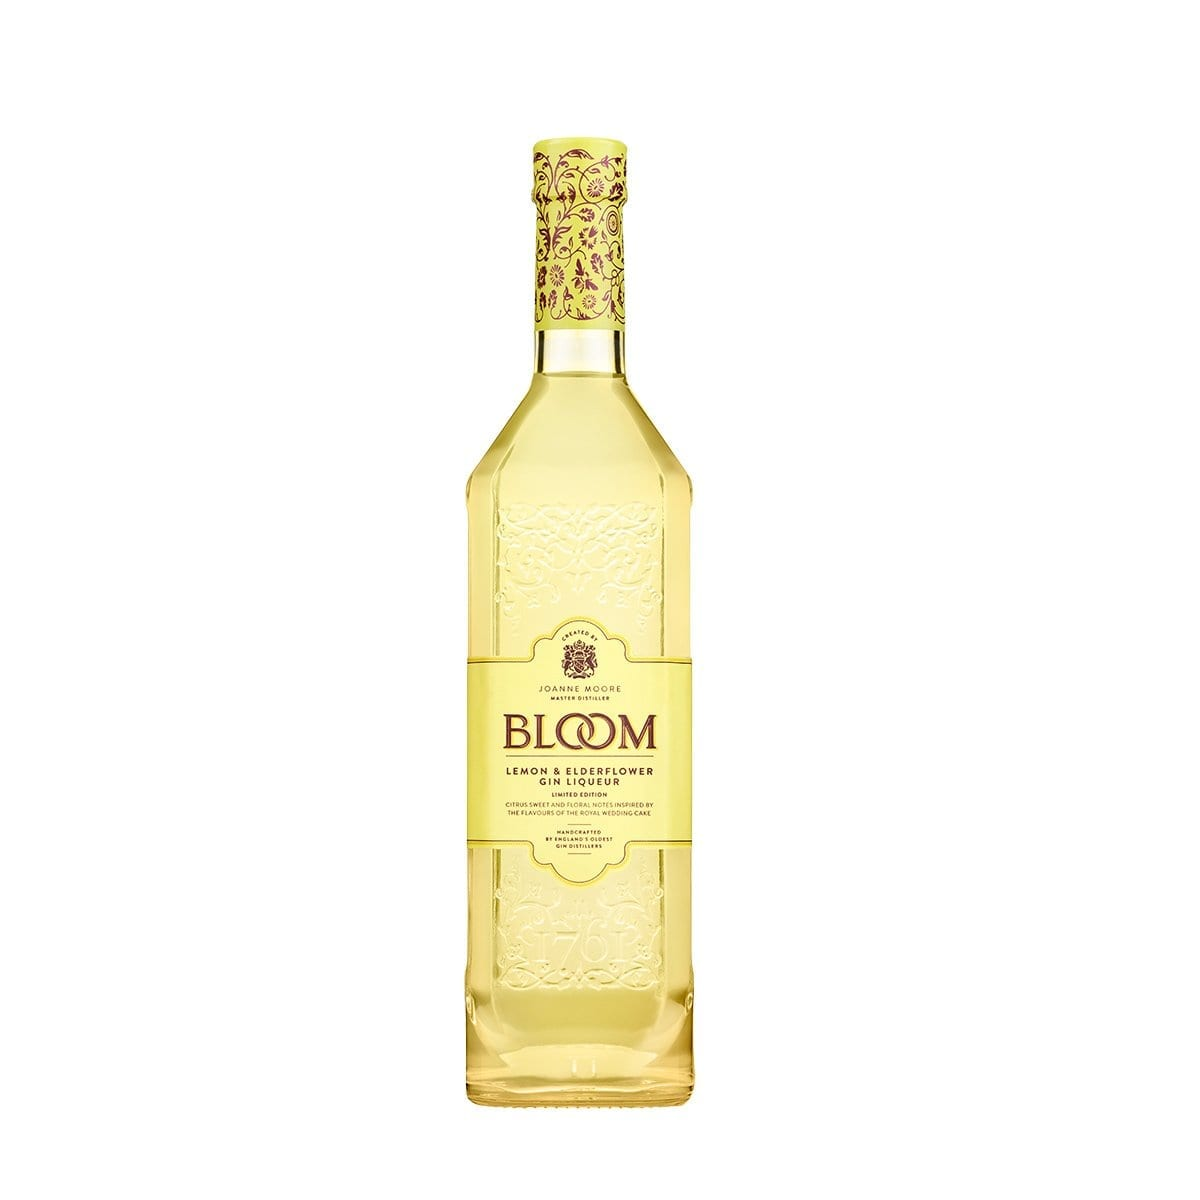 BLOOM Lemon & Elderflower Gin